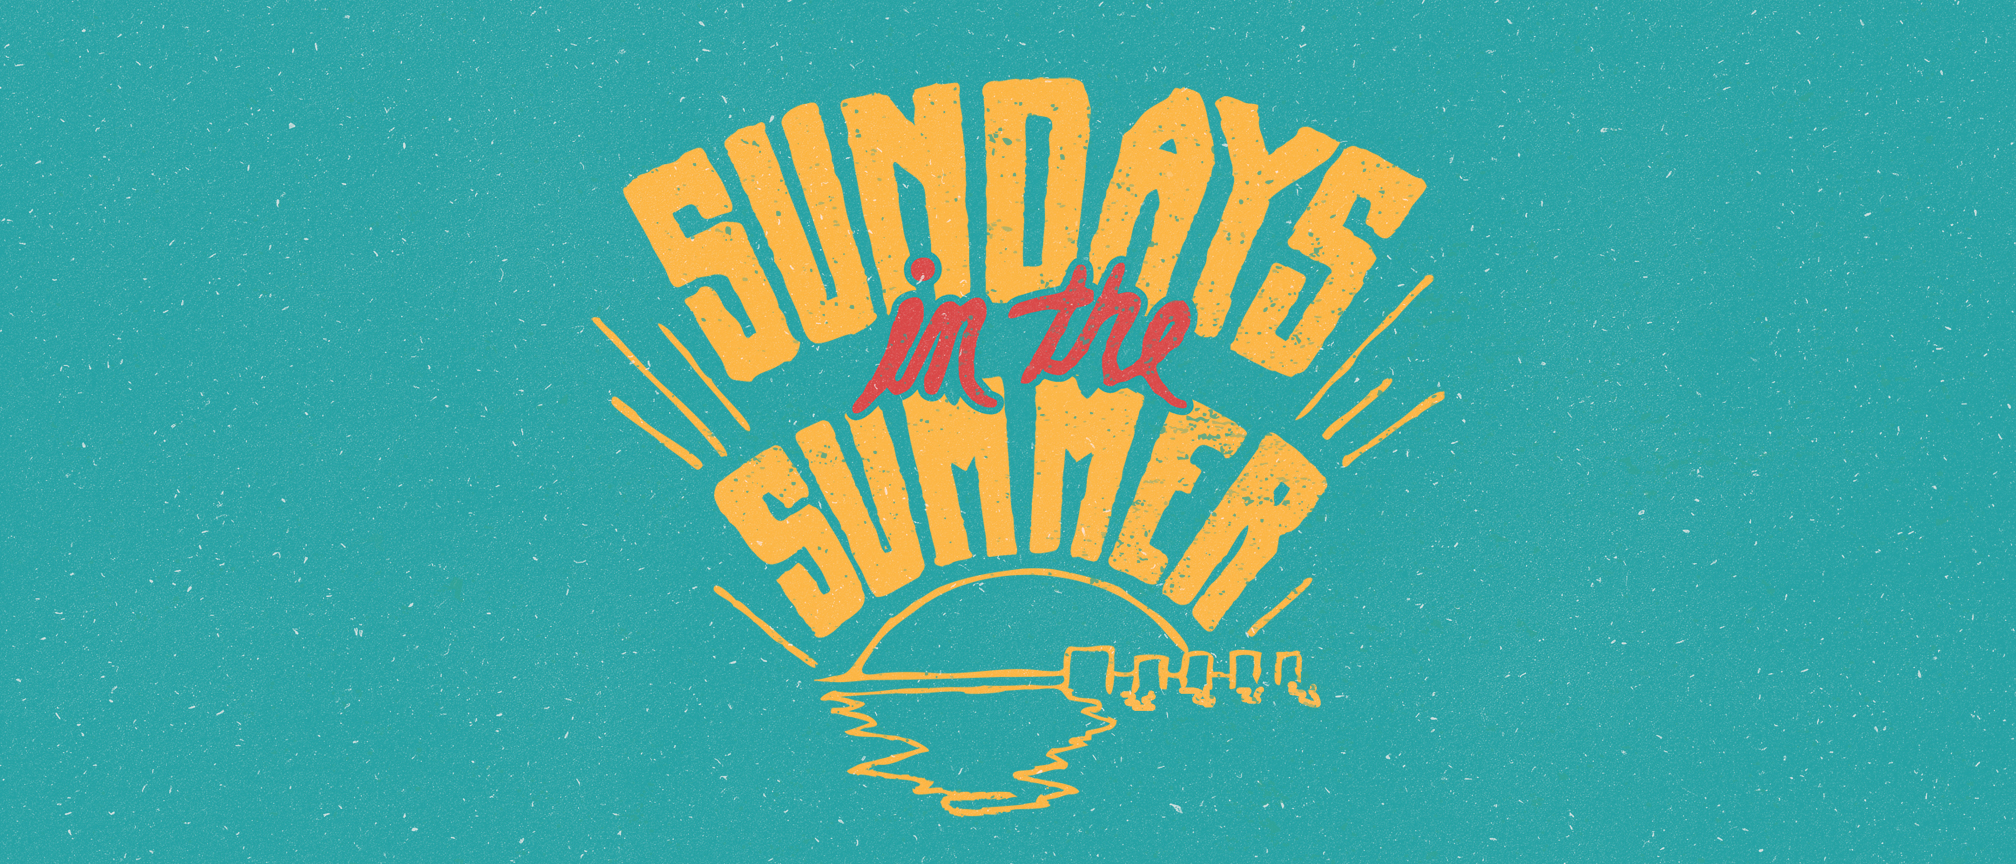 Our Fourth Sunday in the Summer event will be held at the Kingston Harbor pool and Clubhouse at 3:00 pm.  We will be having a potluck style meal so please bring your best dish so that we can eat, splash and be family!